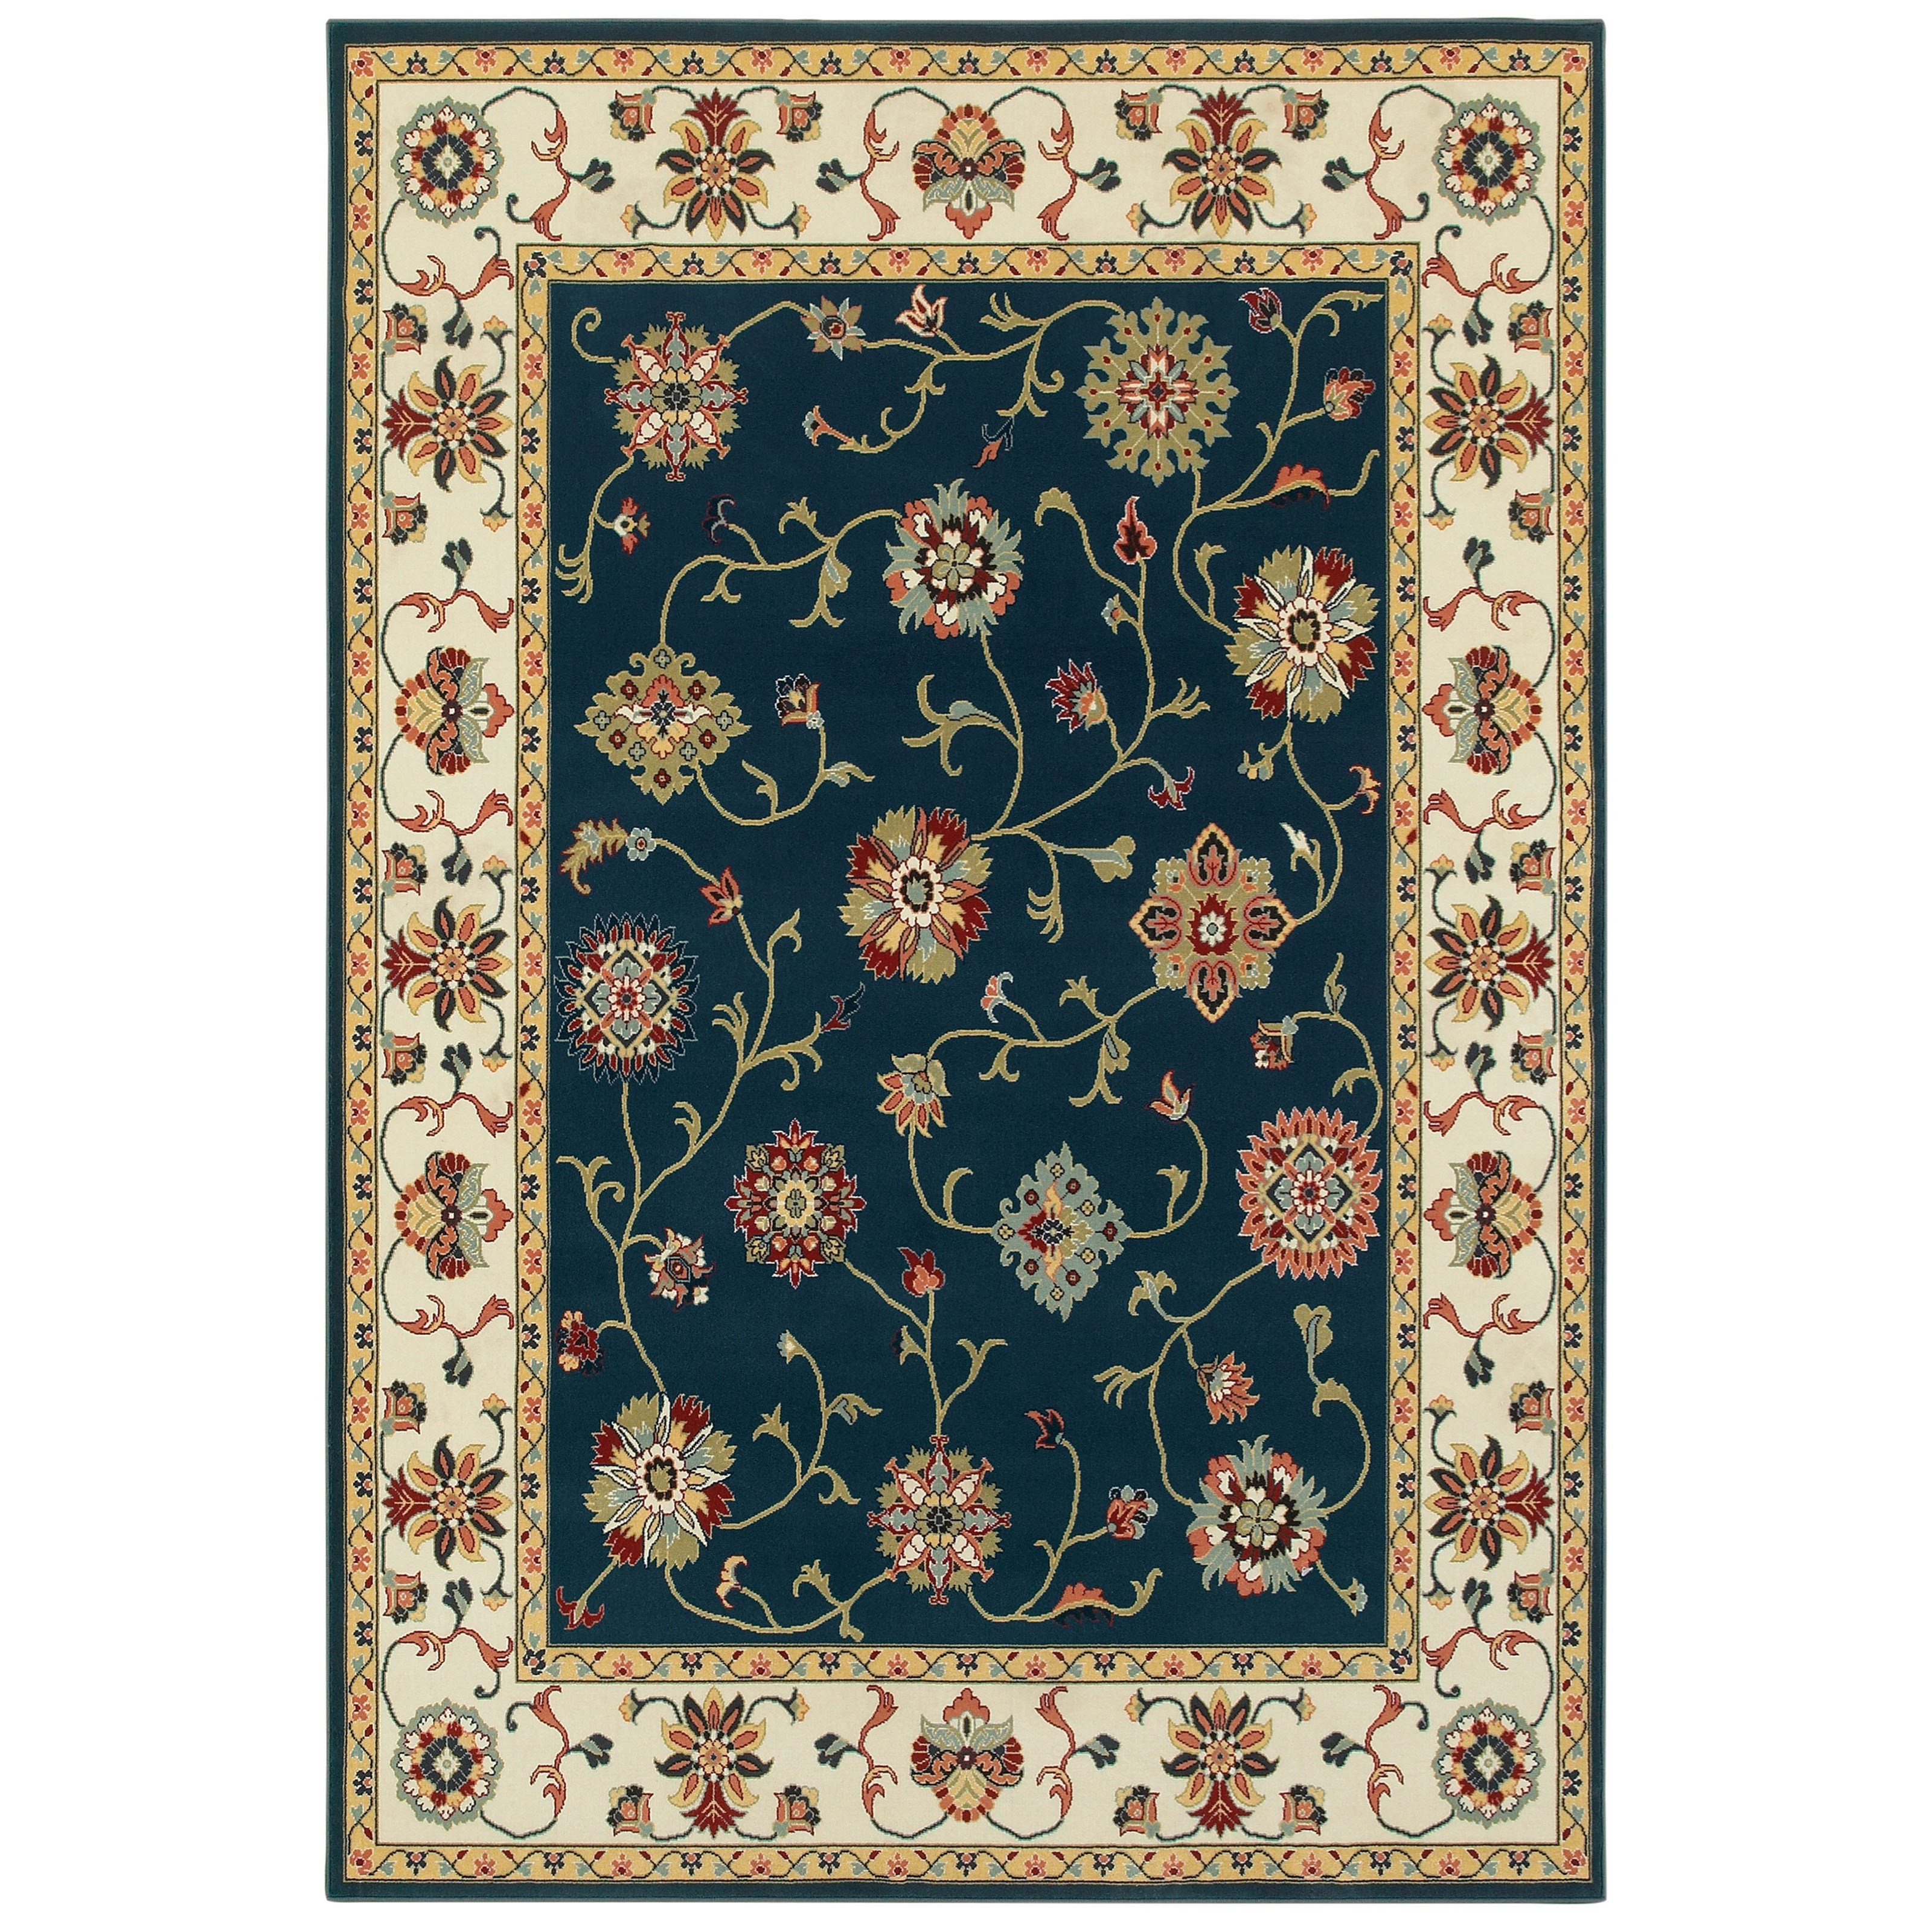 "Kashan 3'10"" X  5' 5"" Rectangle Rug by Oriental Weavers at Godby Home Furnishings"